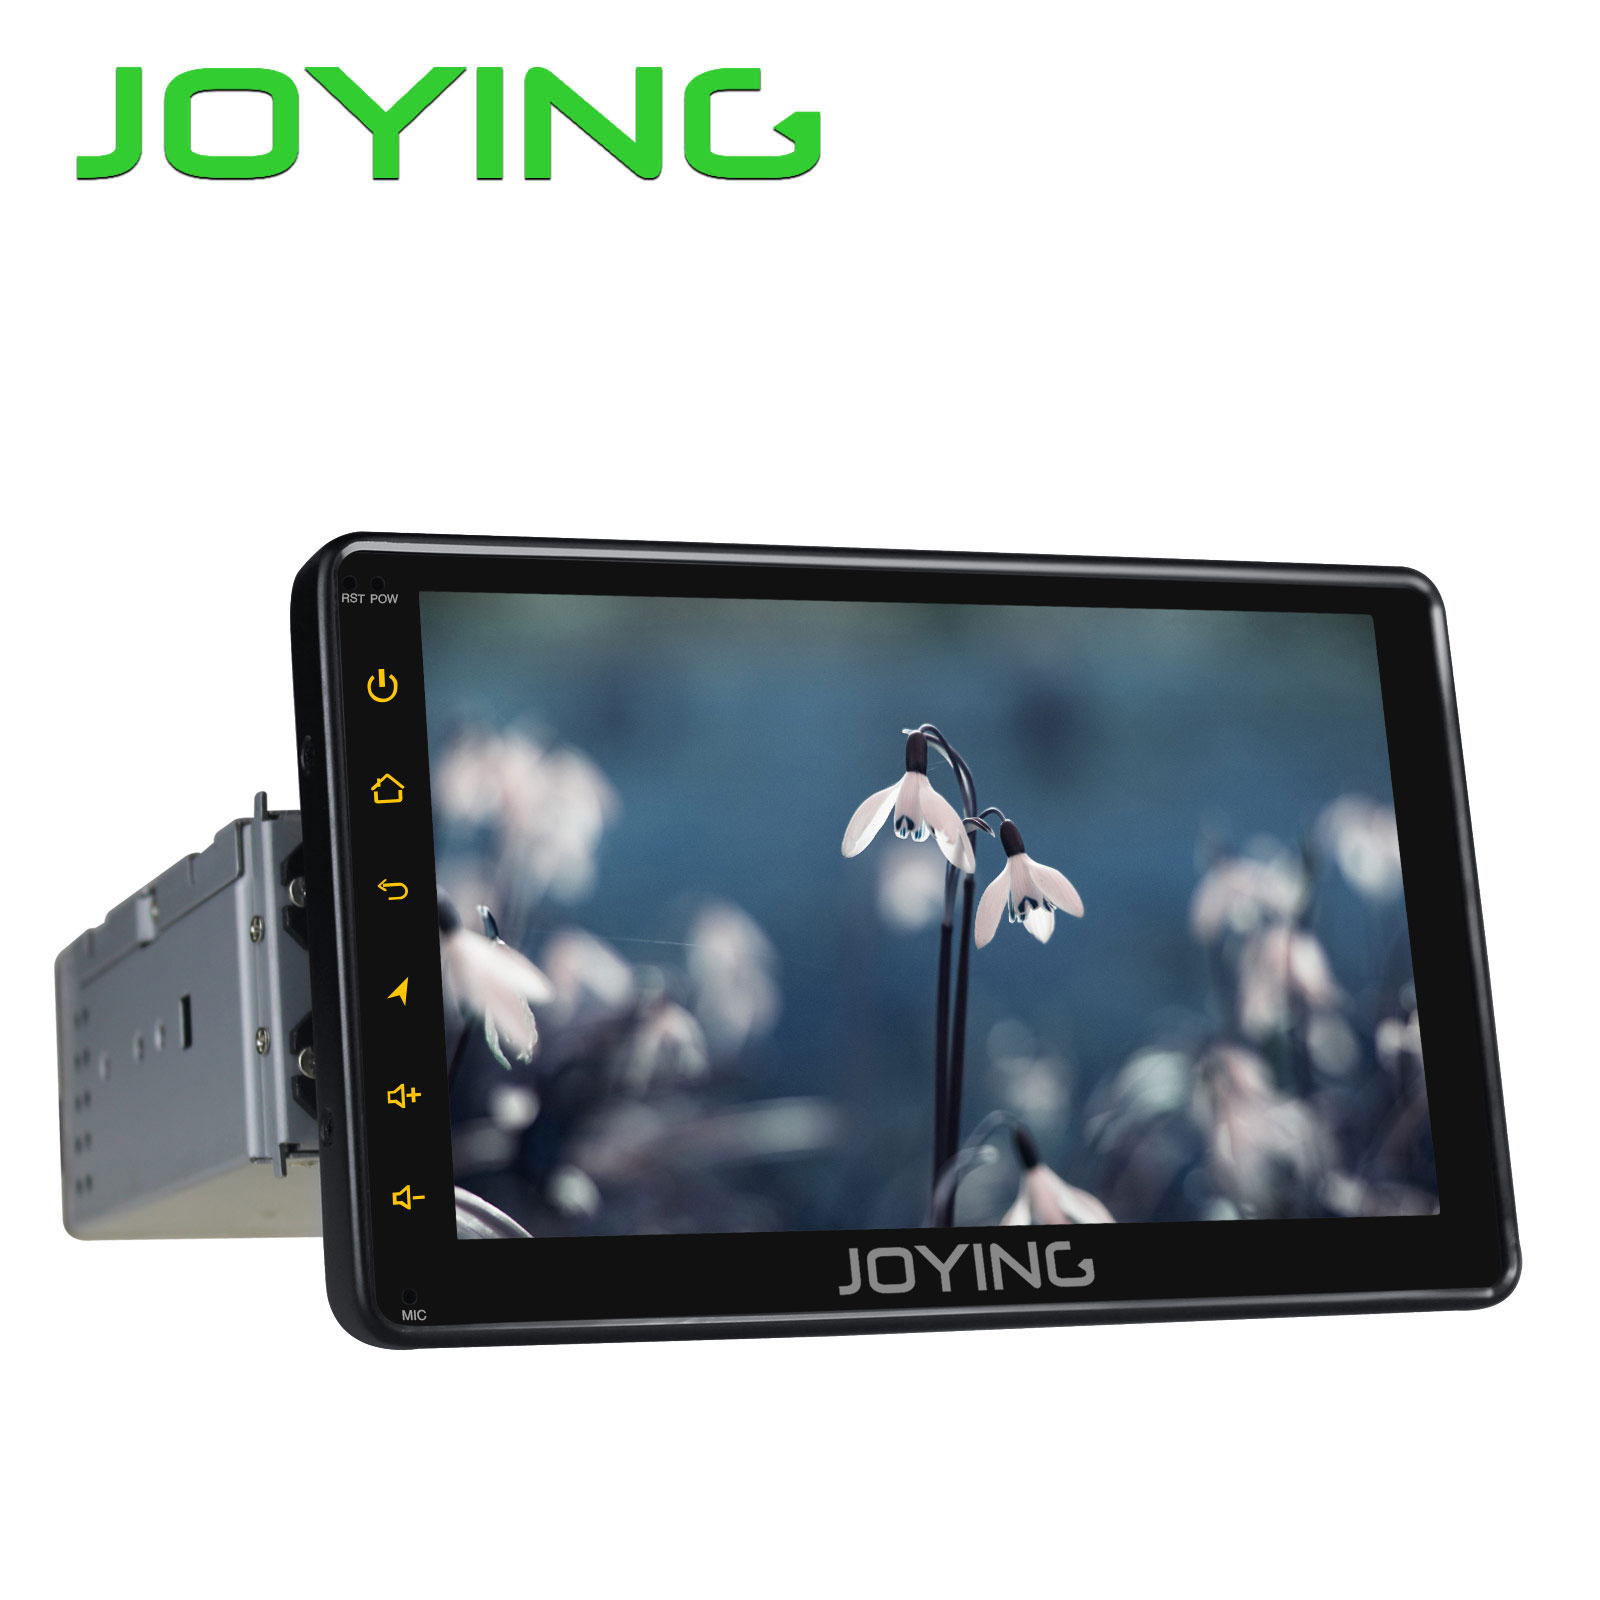 JOYING universal 1 din android 8.1 car multimedia player head unit 7'' Octa Core GPS autradio BT HD WIFI support fast boot/DSP image